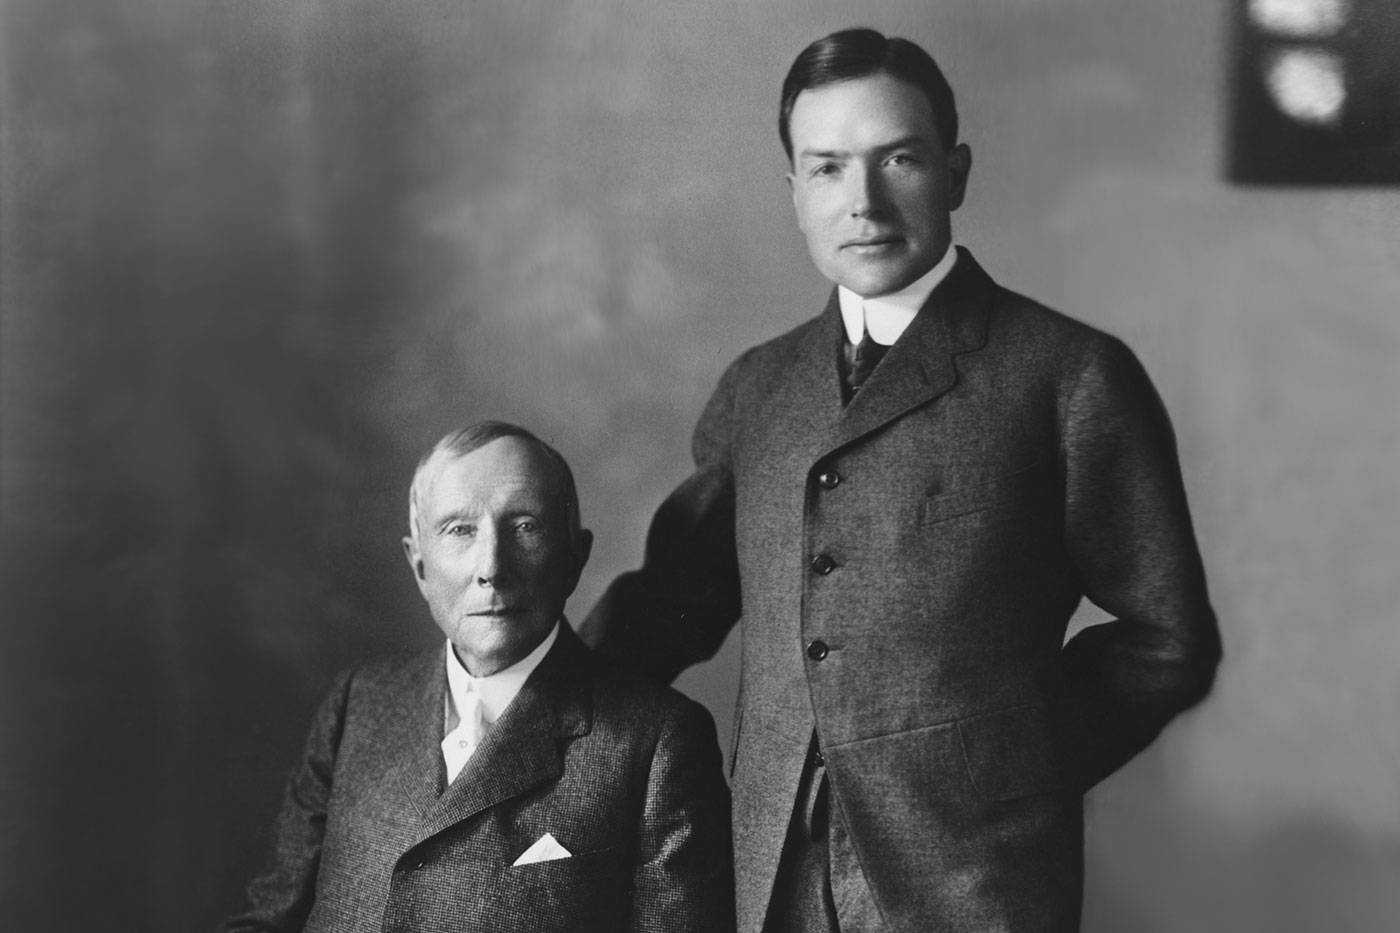 John David Rockefeller, Jr. and Sr.